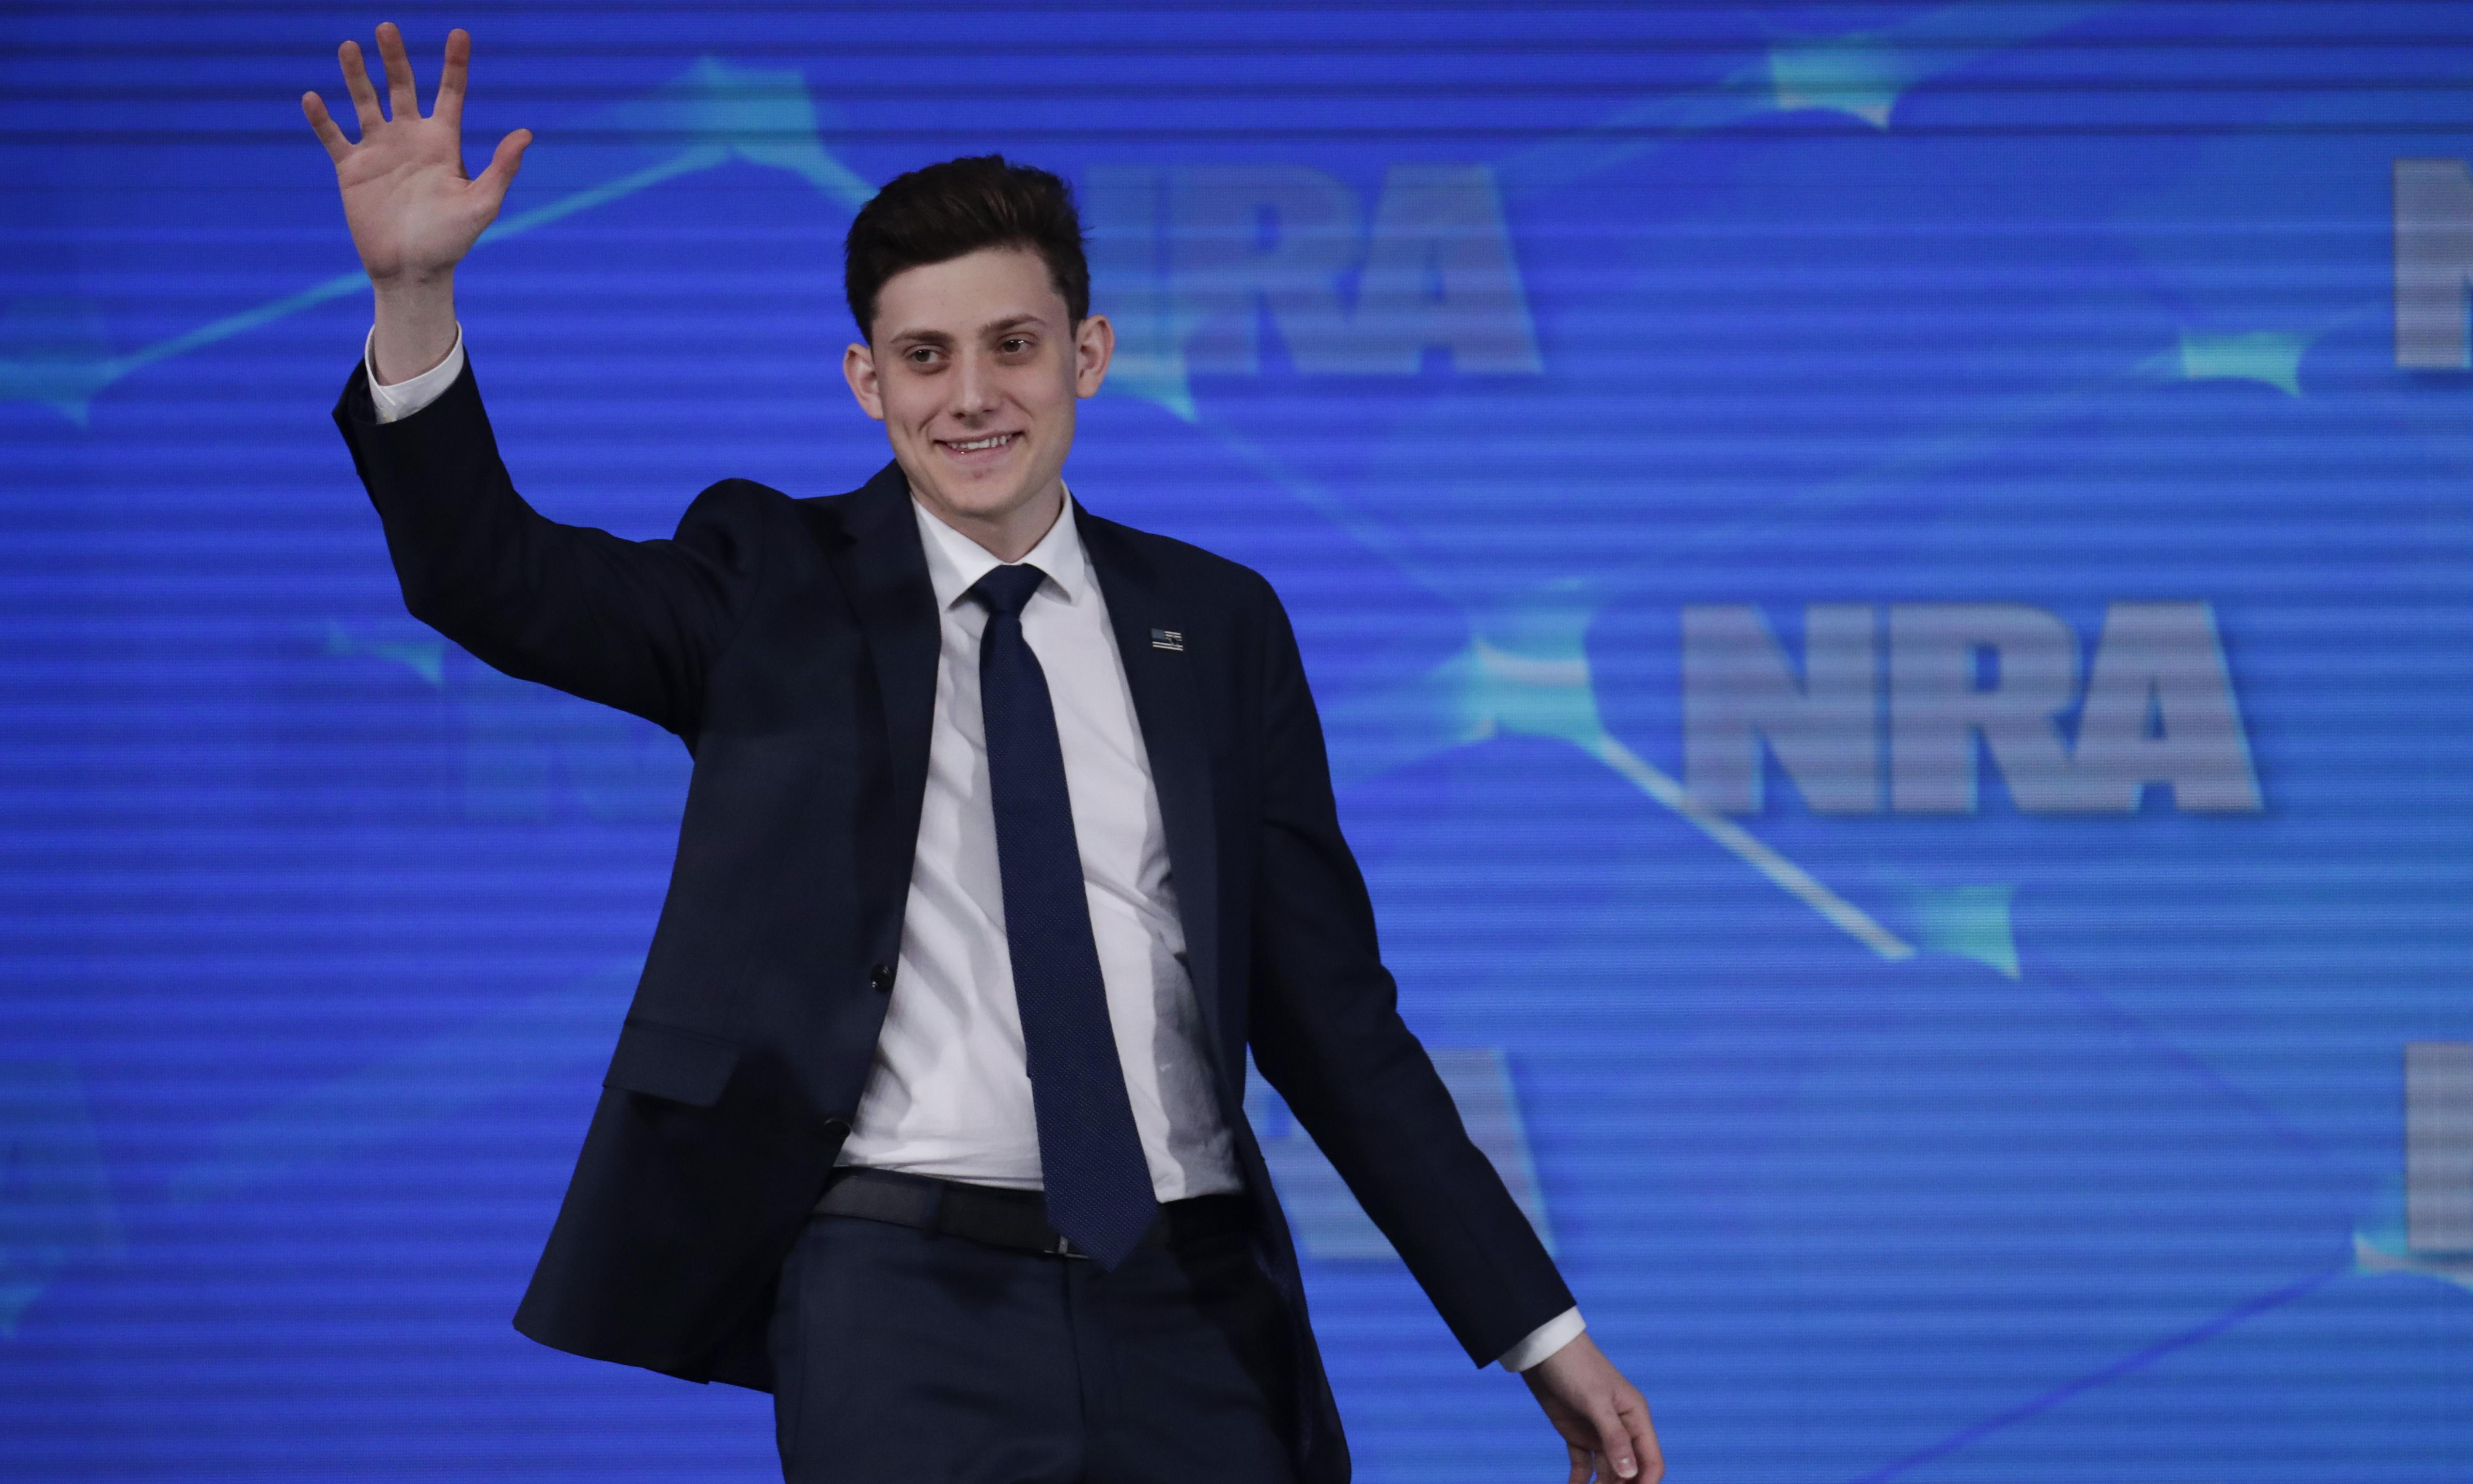 Kyle Kashuv may not be attending Harvard, but he's learning a valuable lesson